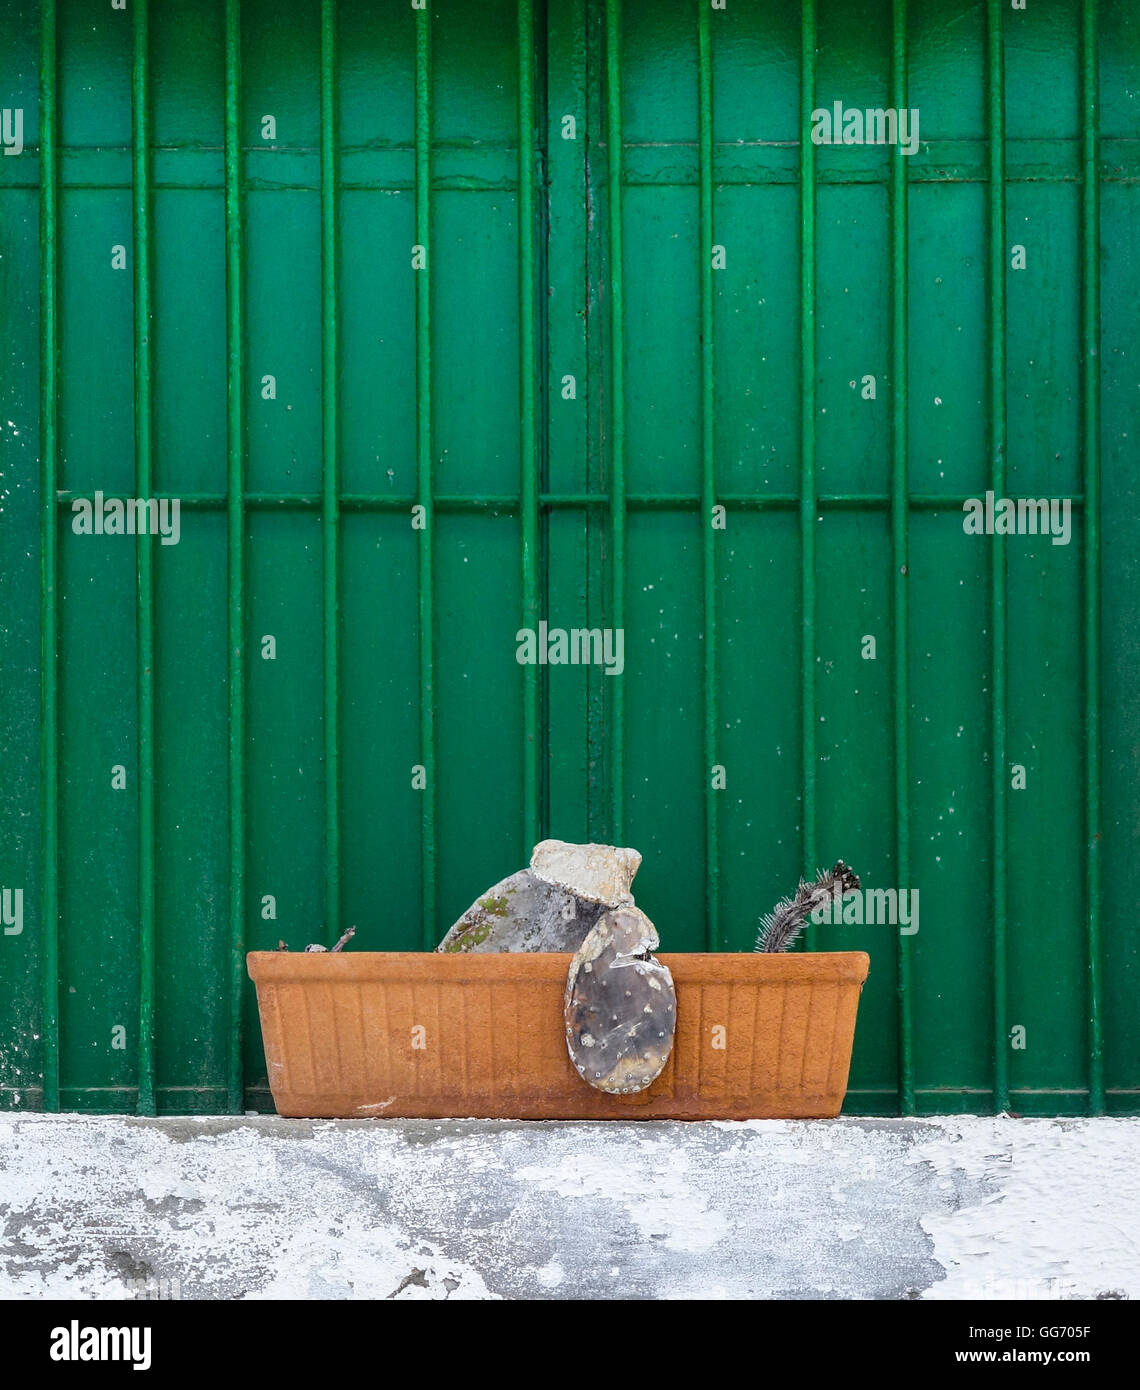 Dead an dried Cactus plant in window box against steel shuttered windows. - Stock Image